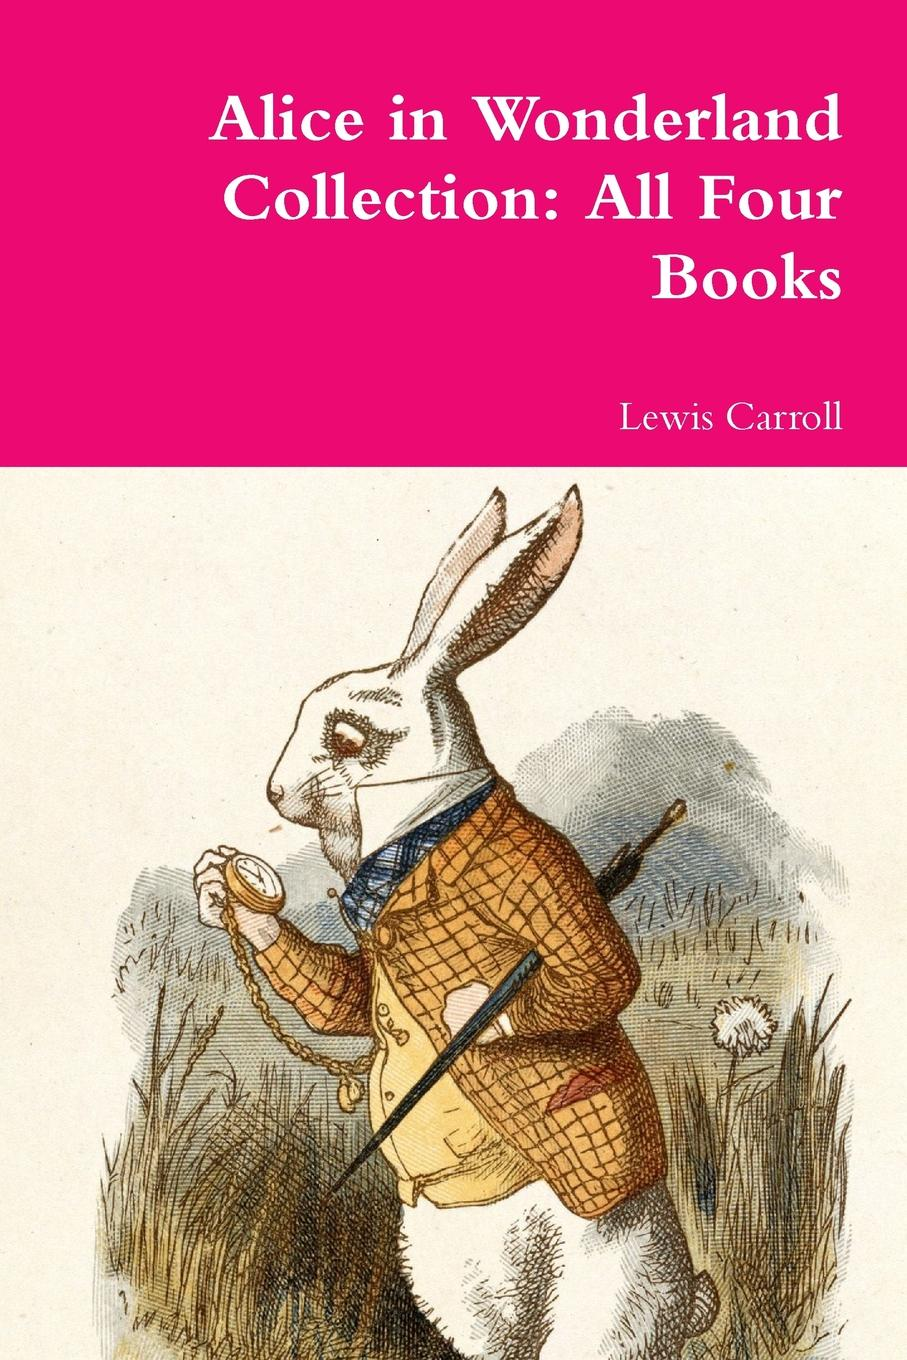 Lewis Carroll Alice in Wonderland Collection. All Four Books read it yourself alice in wonderland level 4